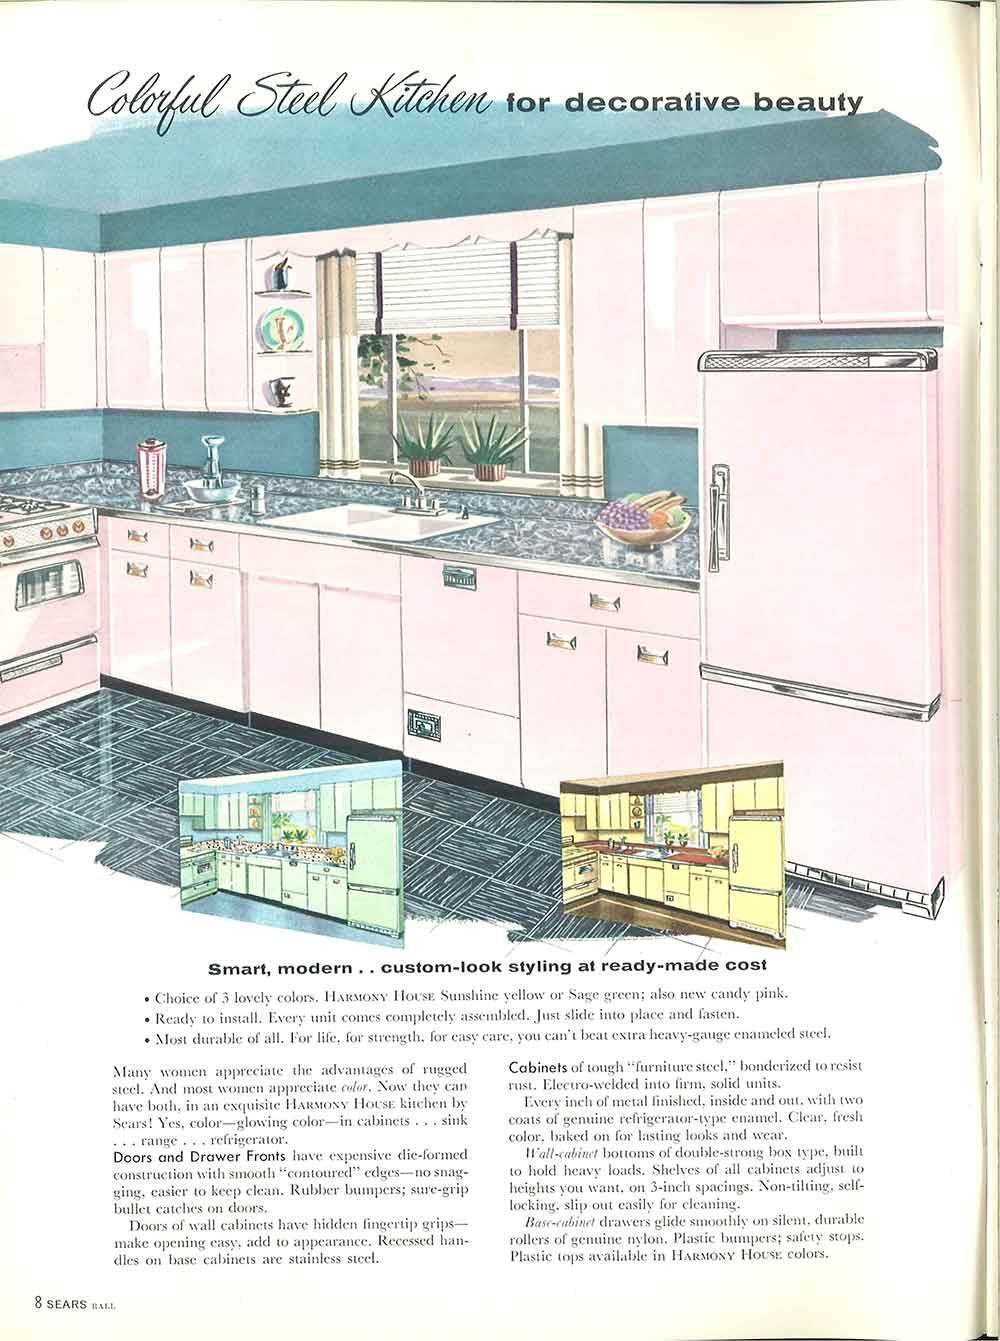 1958 Sears Kitchen Cabinets And More 32 Page Catalog Home Improvement Catalog Retro Renovation Vintage Kitchen